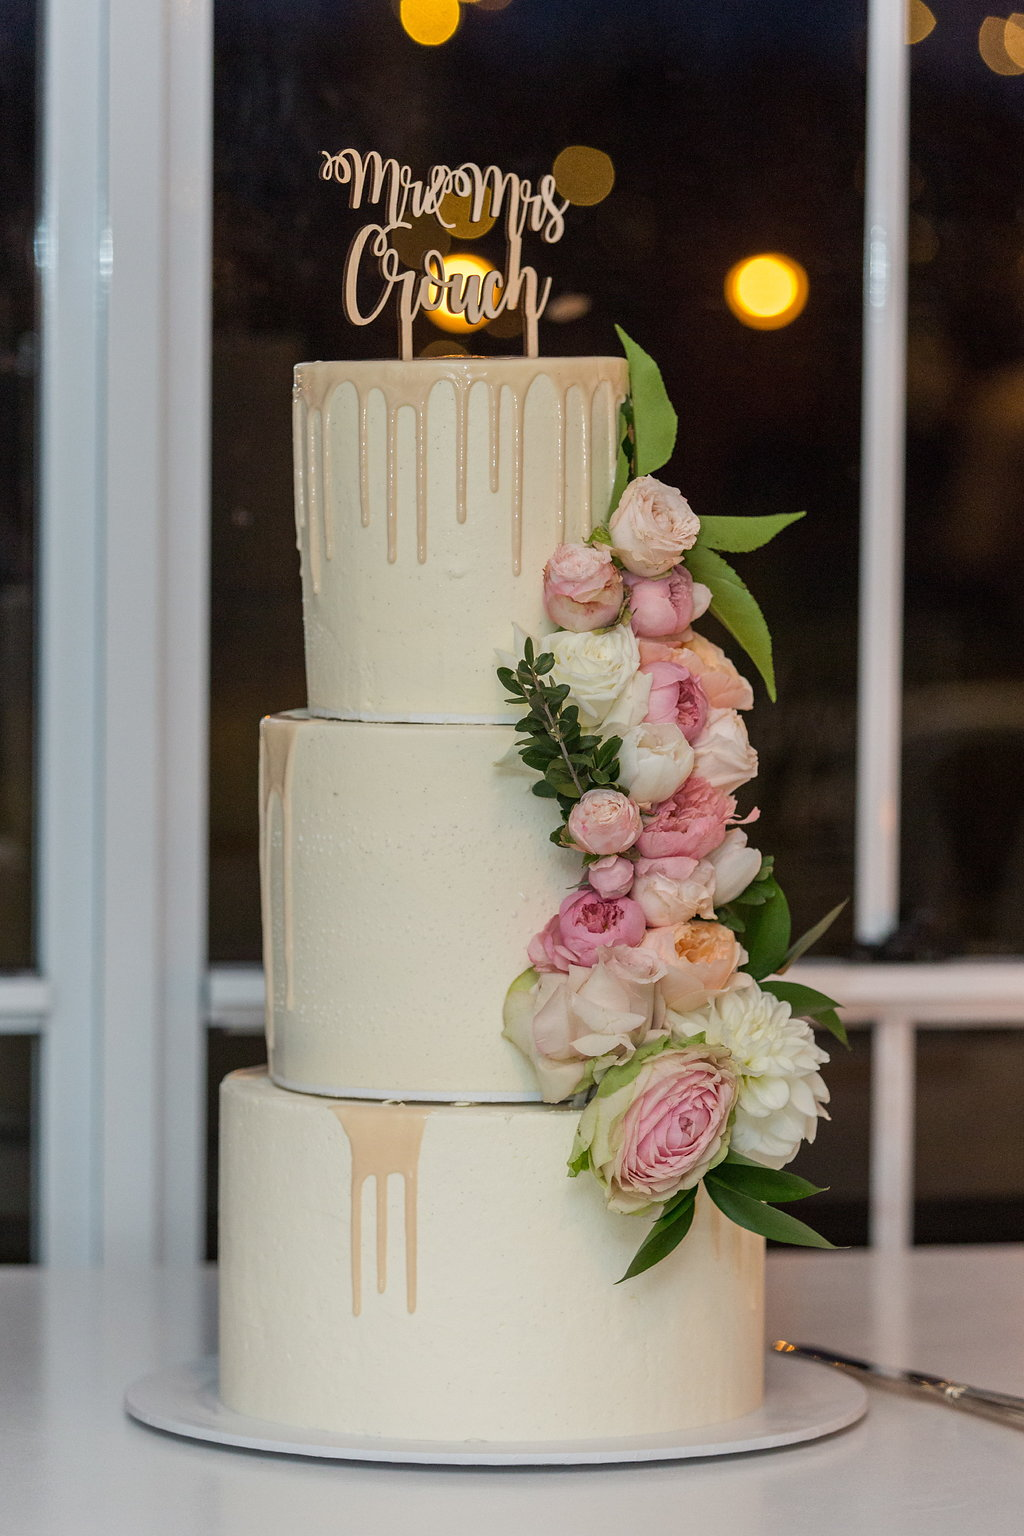 Cake flowers featuring pastel rose blooms